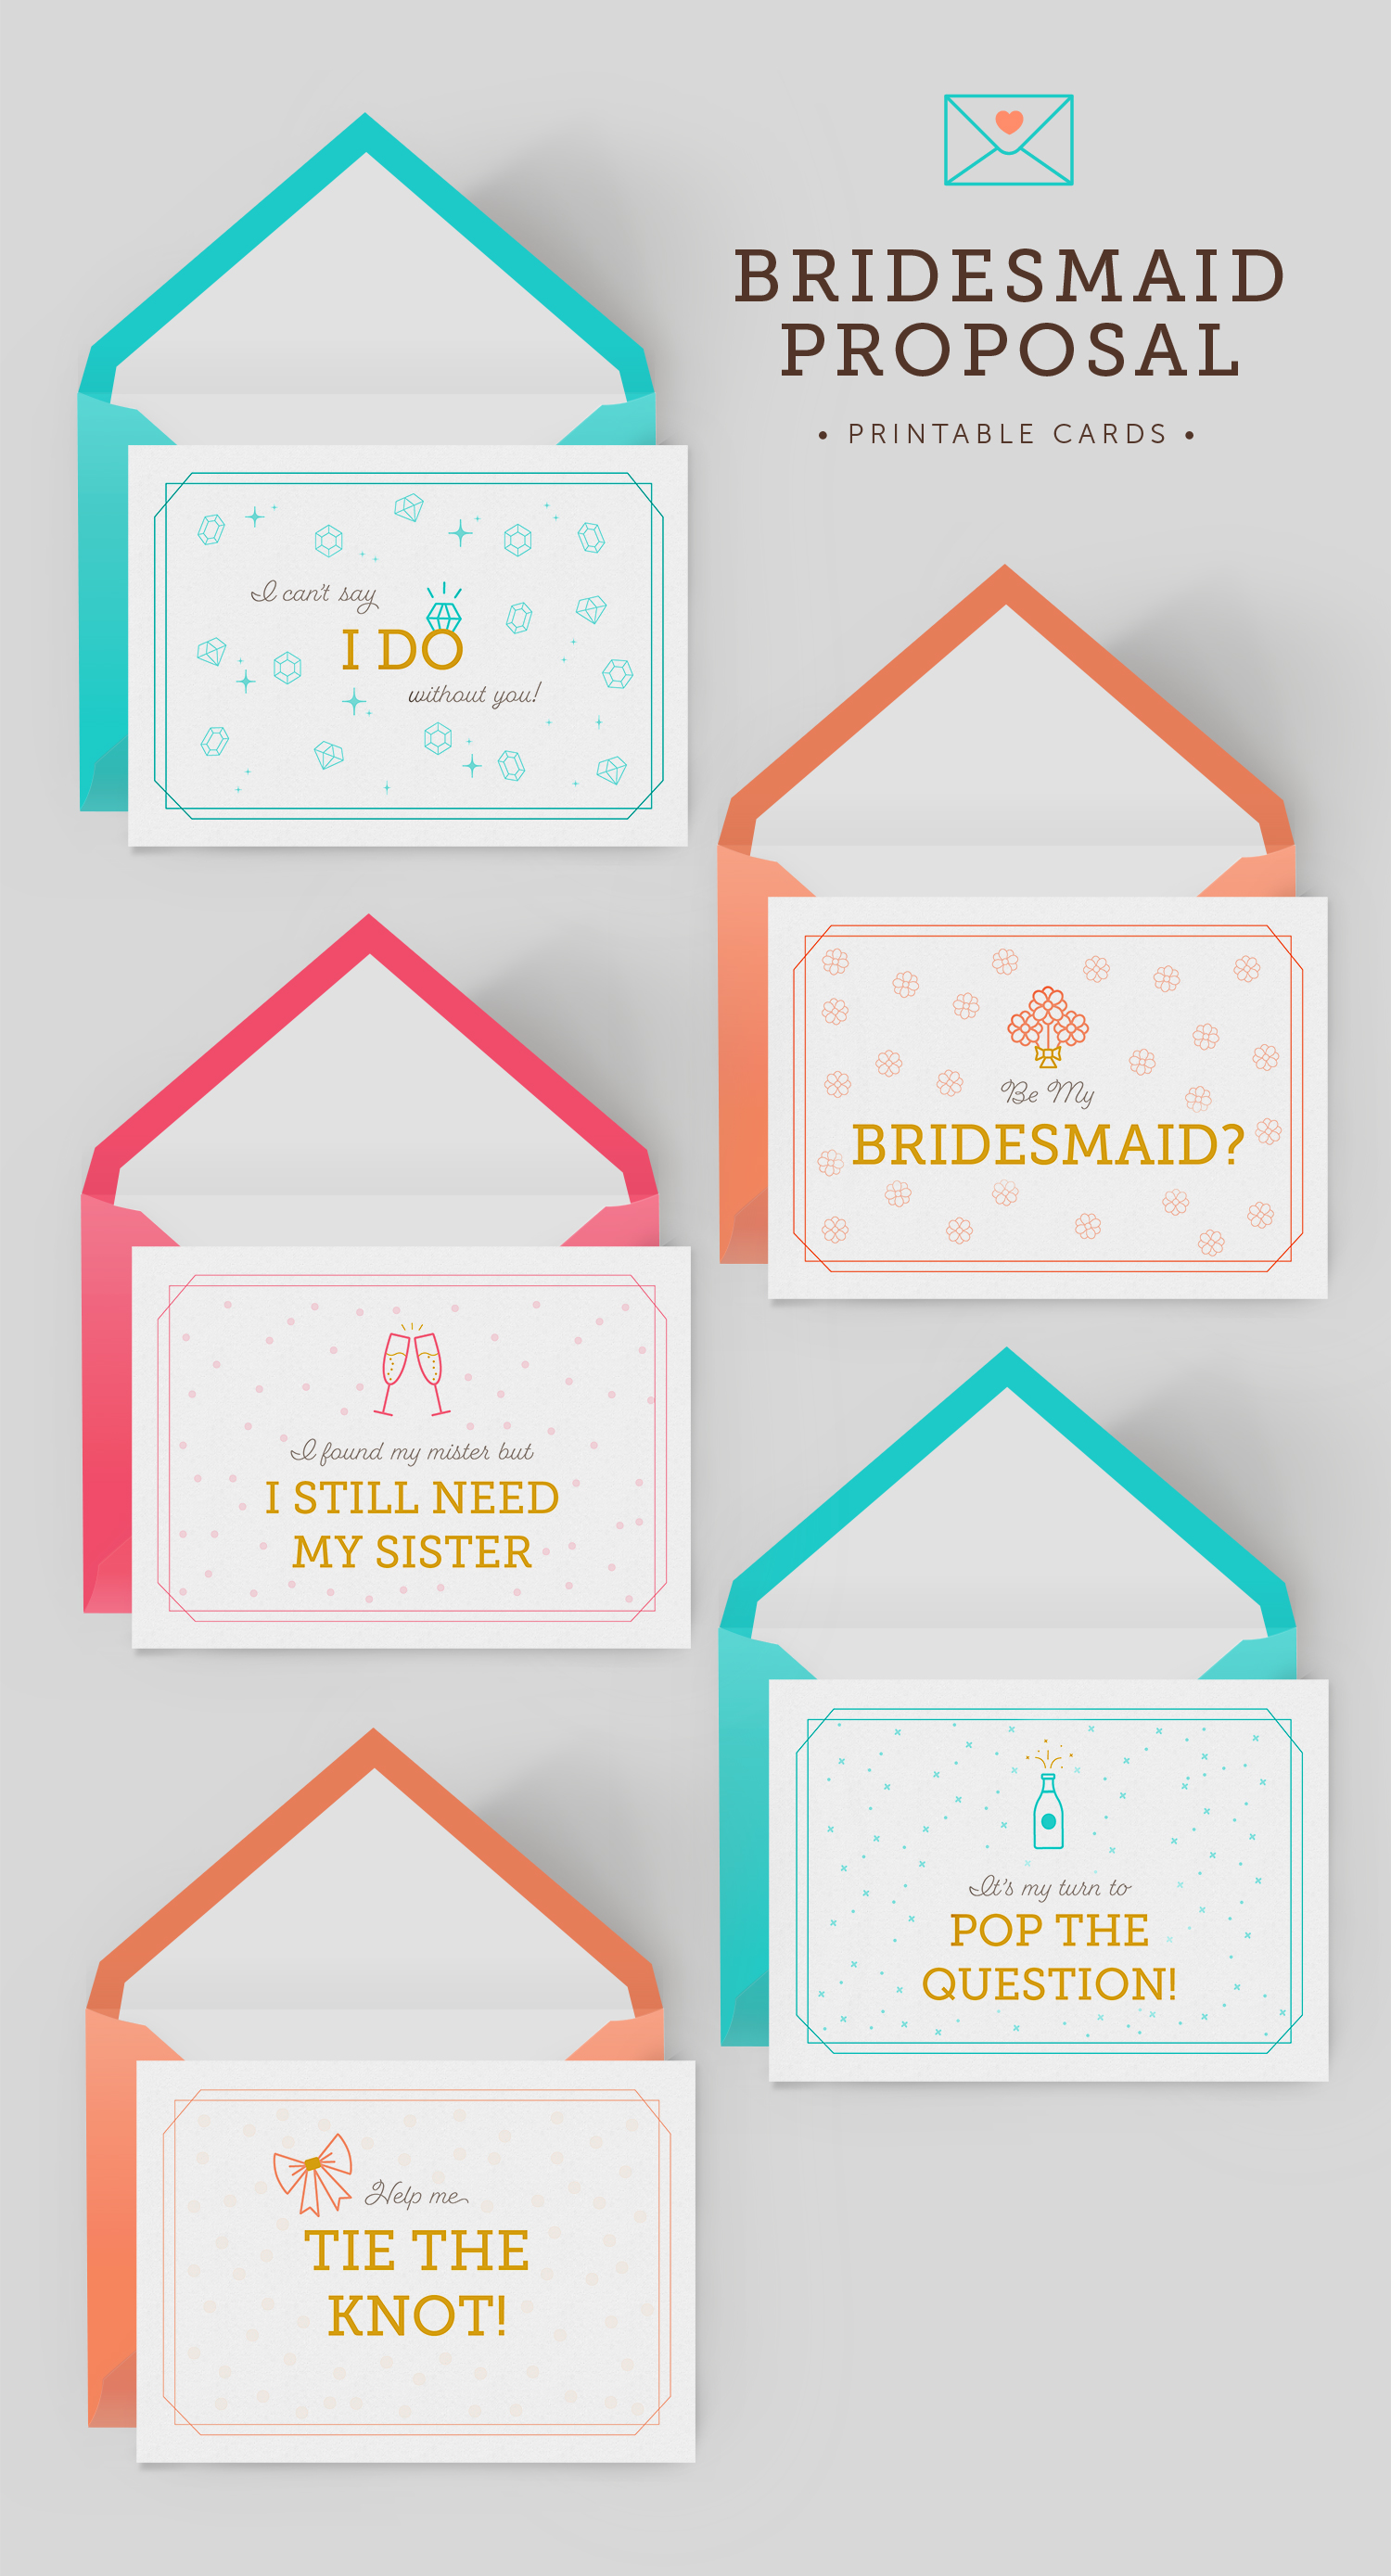 image about Free Printable Bridesmaid Proposal named 14 Bridesmaid Proposal Tips and Printables - Sharis